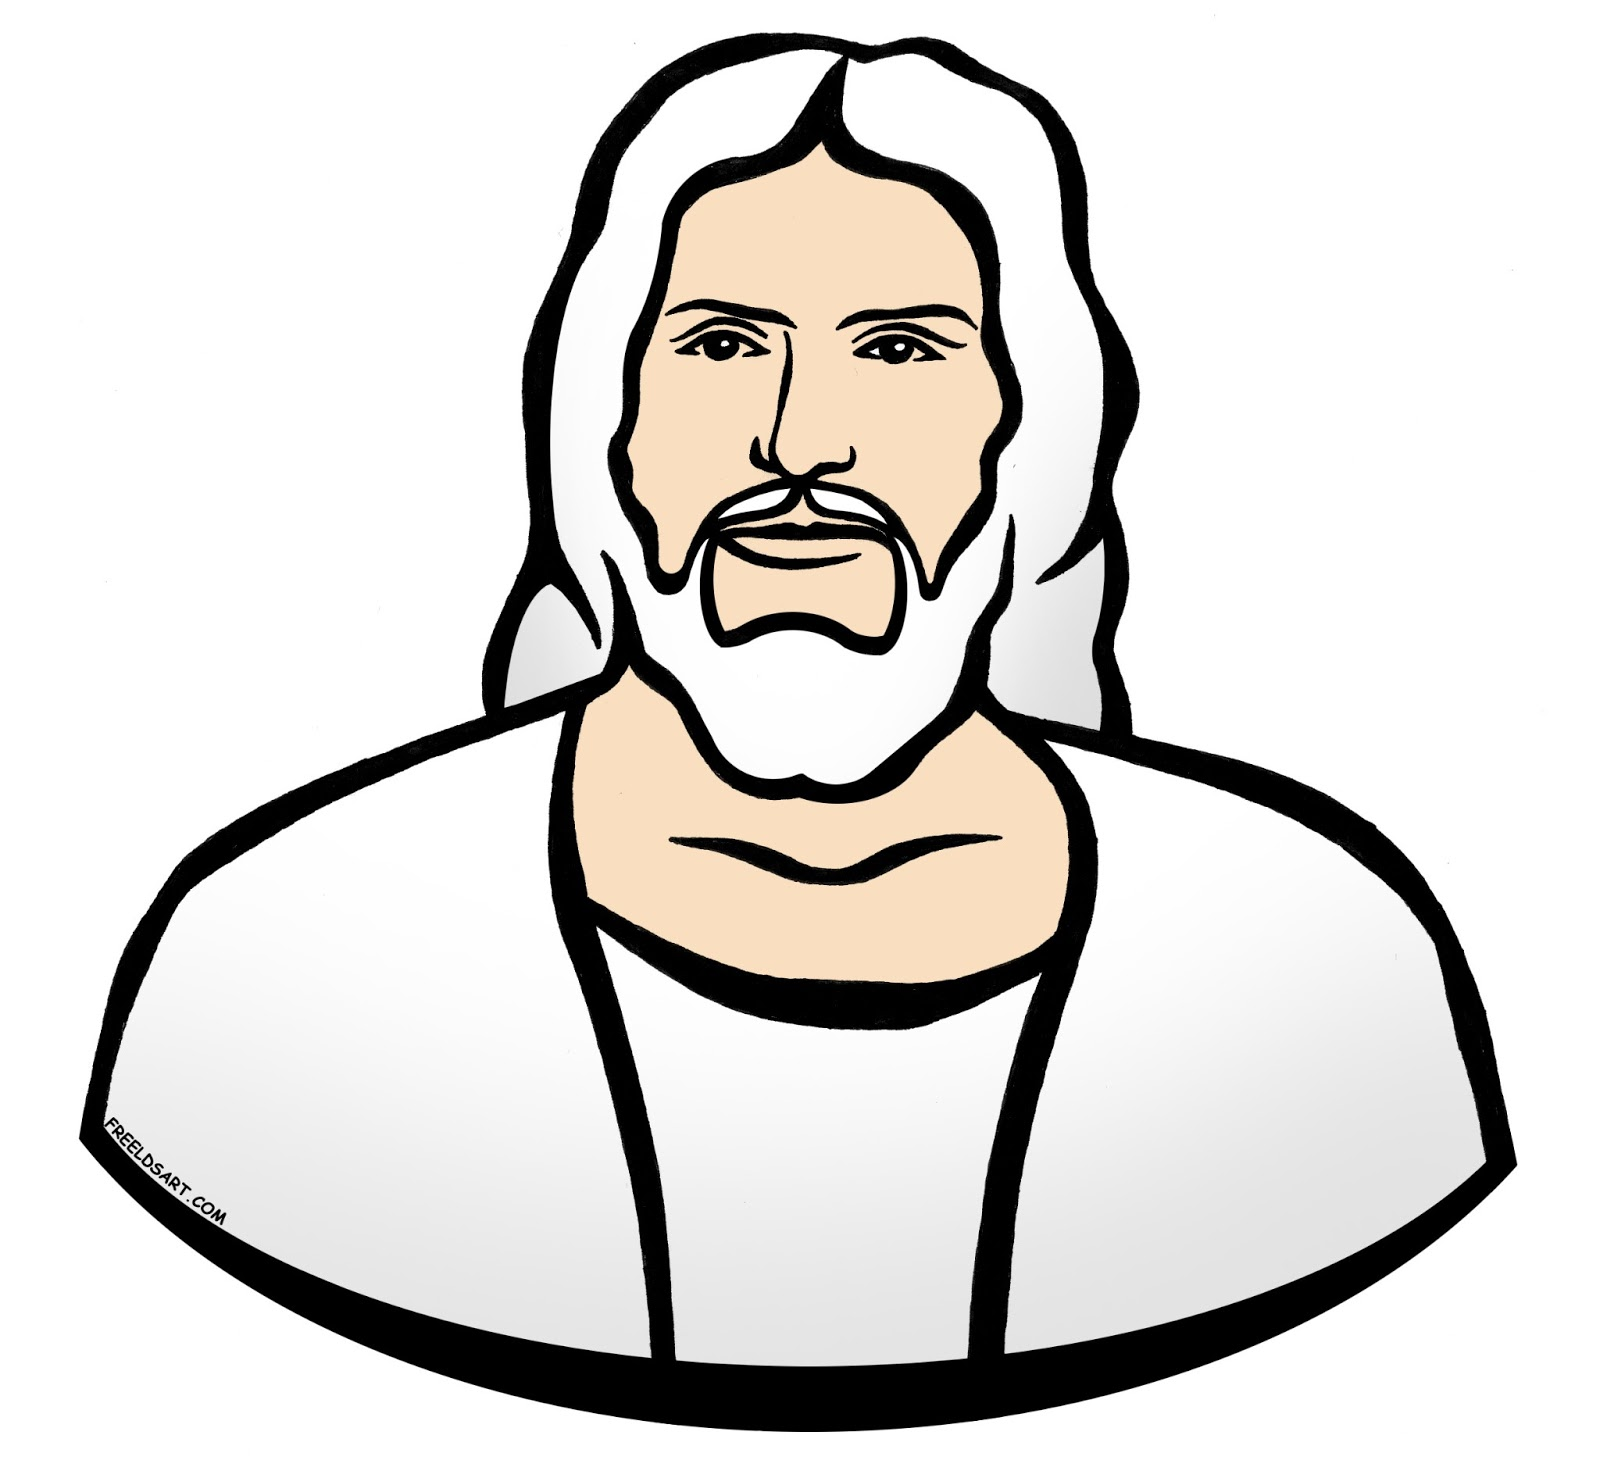 heavenly father clipart clipart suggest Printable Clip Art of Jesus Printable Clip Art of Jesus